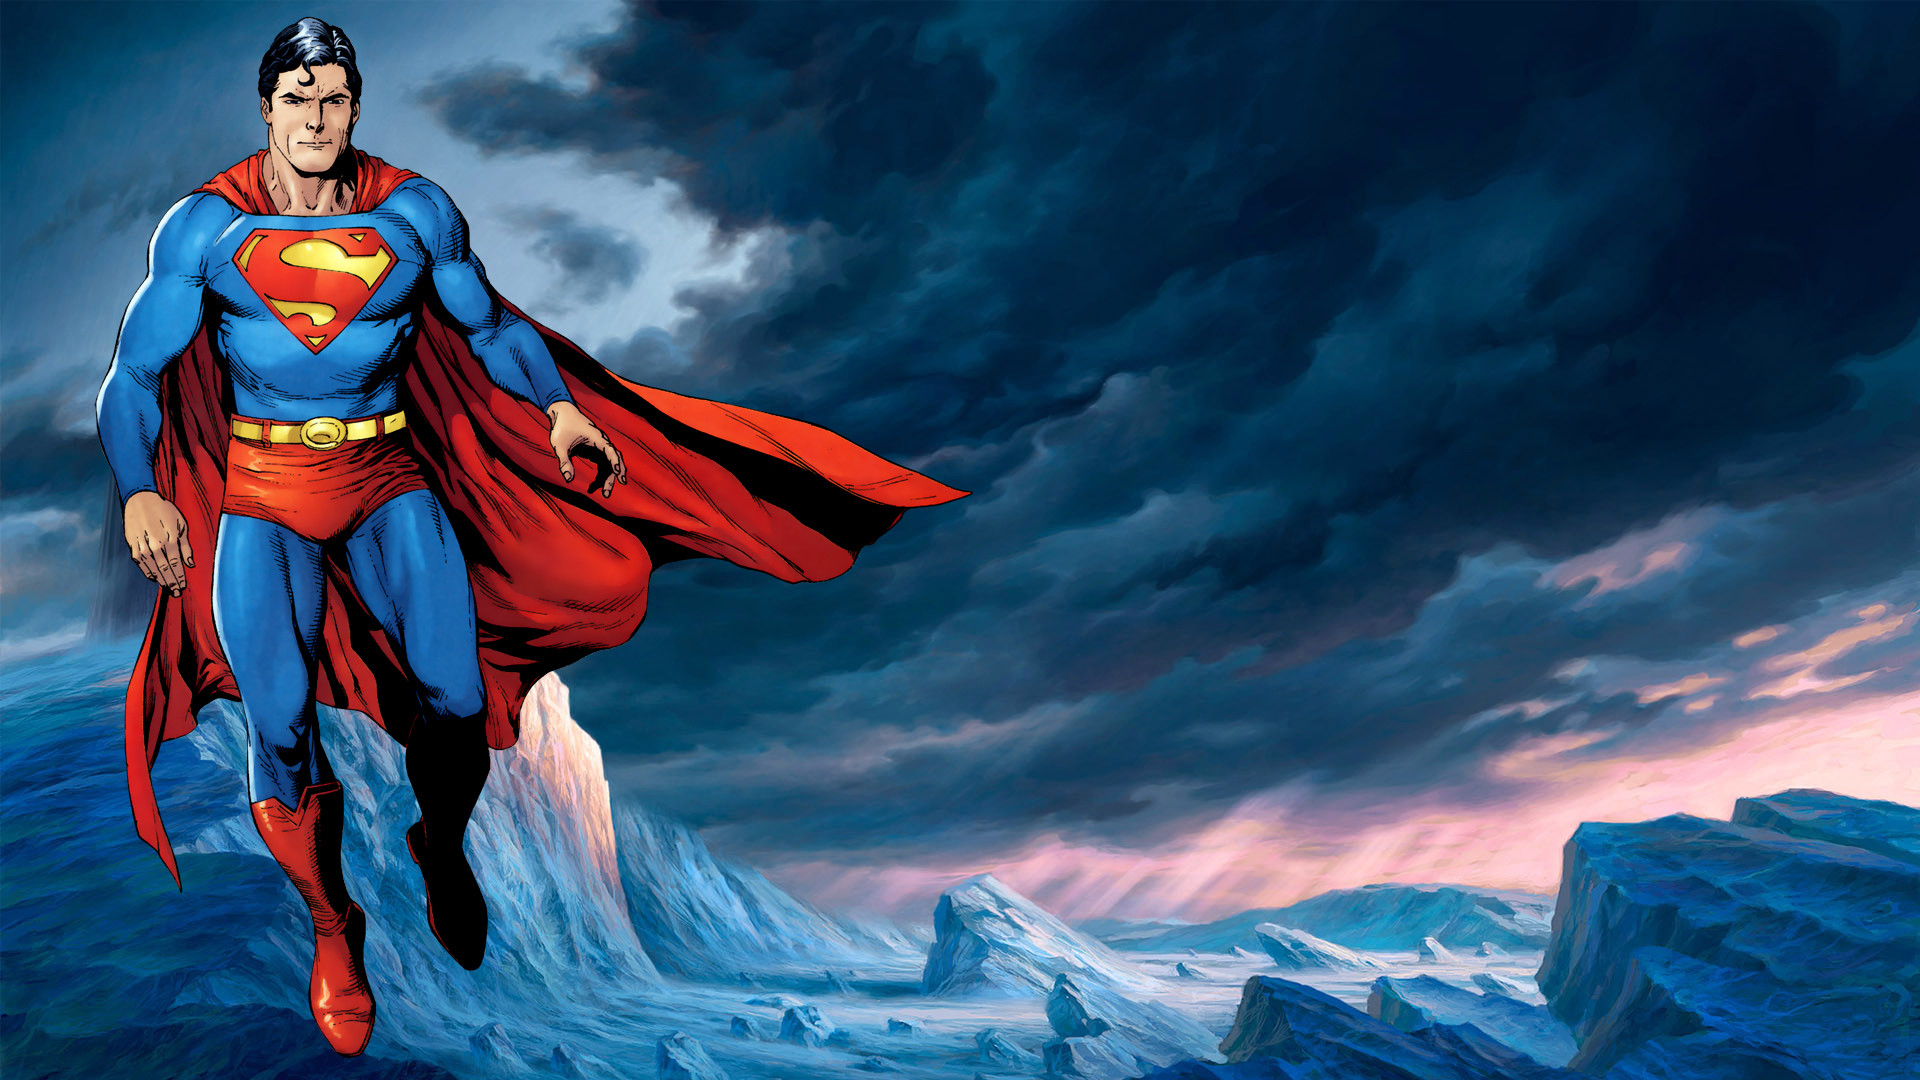 2880x1800 Superman Logo Wallpapers Android With High Resolution Wallpaper On Brands Logos Category Similar 2013